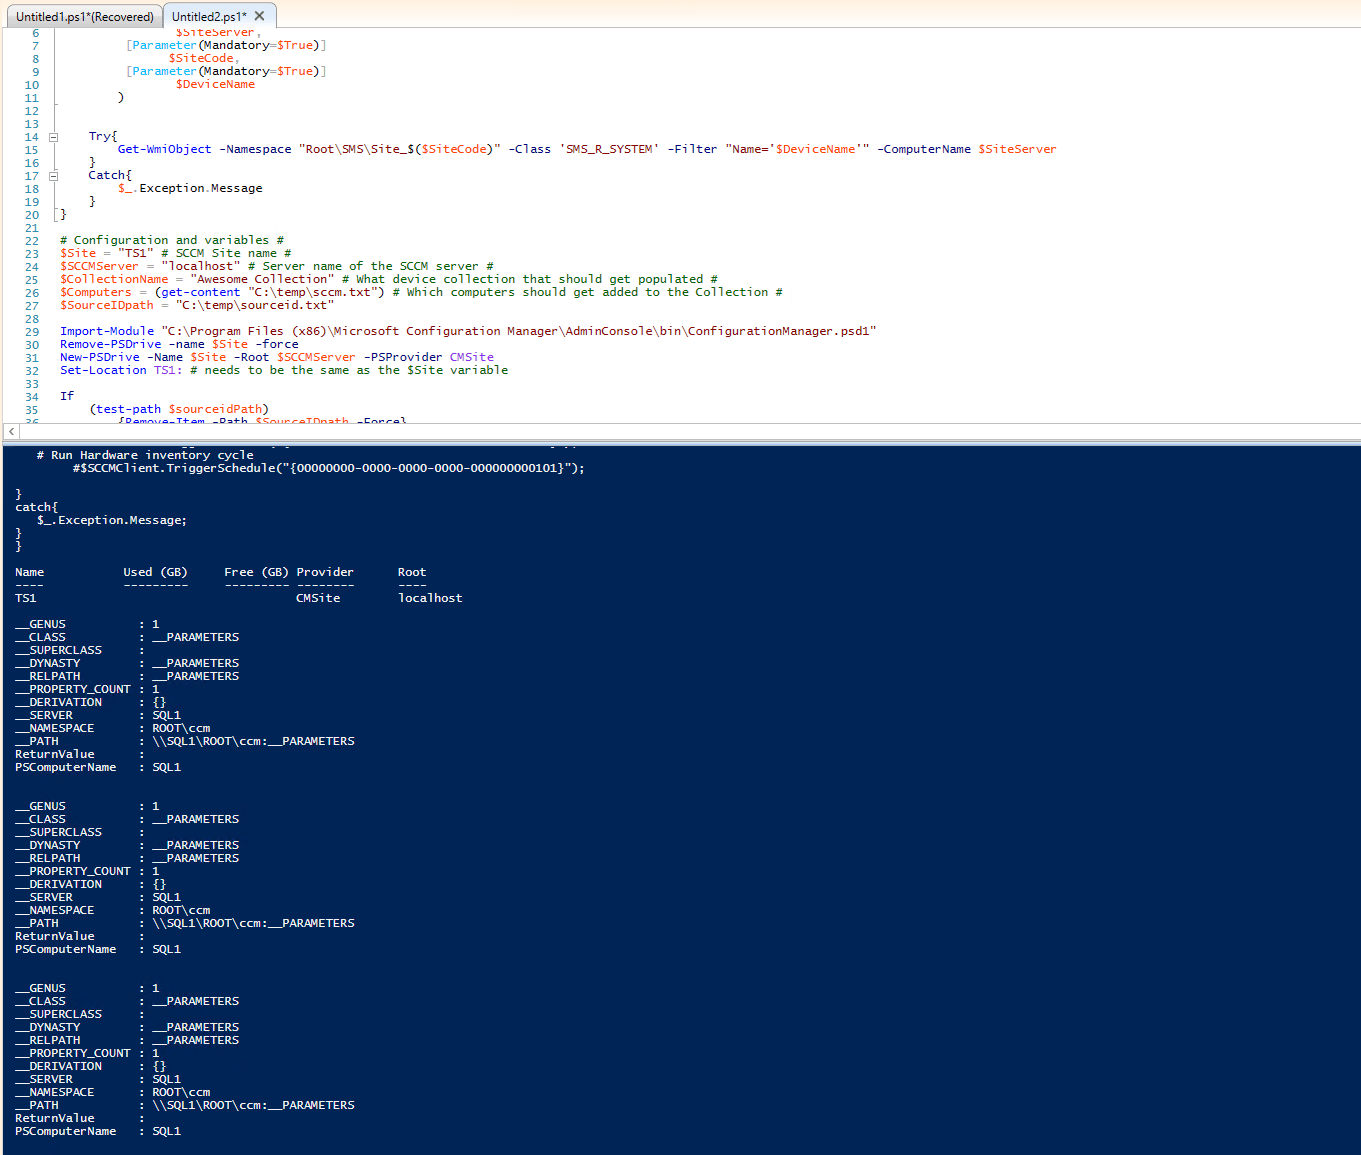 SCCM and Powershell! adding nodes to a collection and trigger